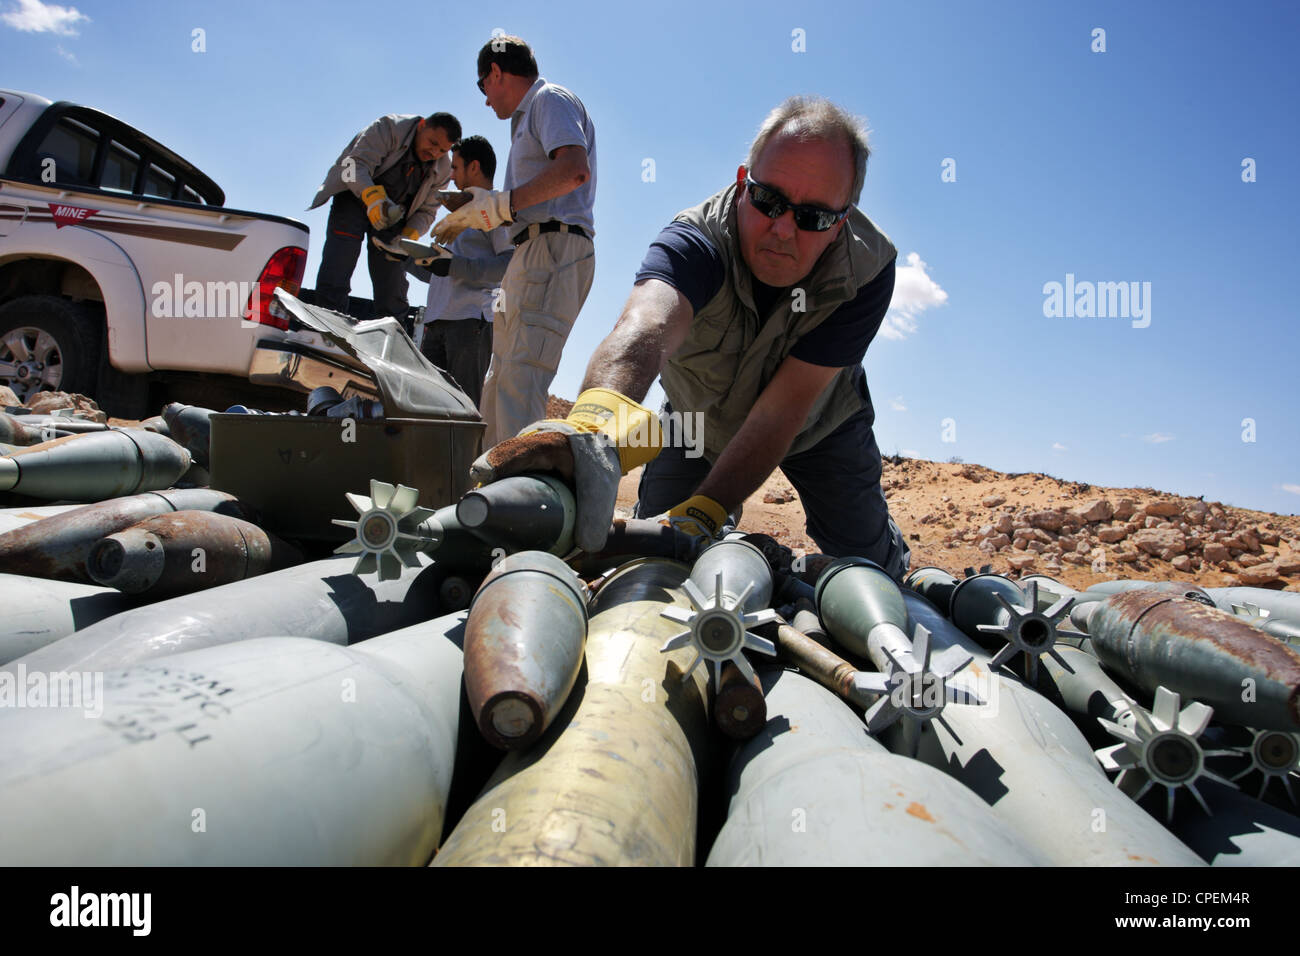 International bomb disposal members prepare demolition of unexploded ordnance near Sirte, Libya - Stock Image